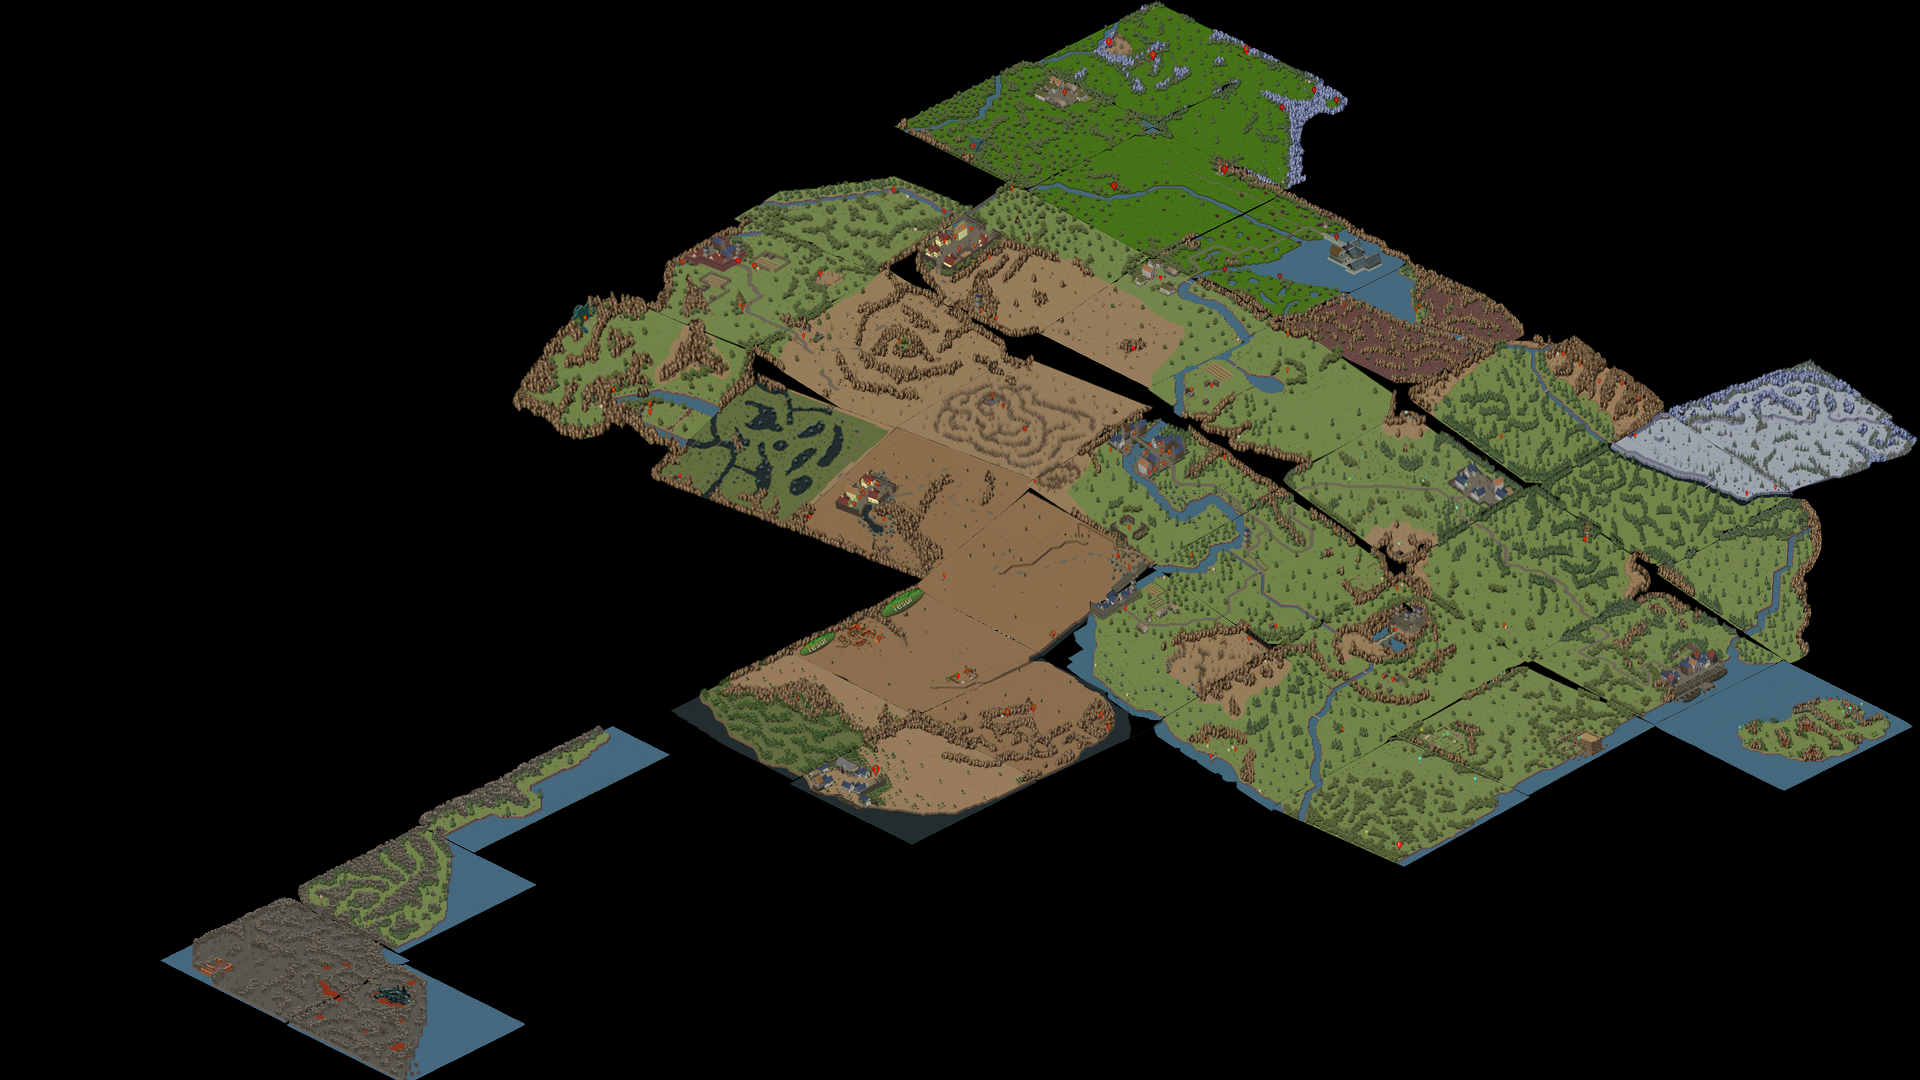 File:Detailed Map Full 66% png - Exiled Kingdoms Wiki